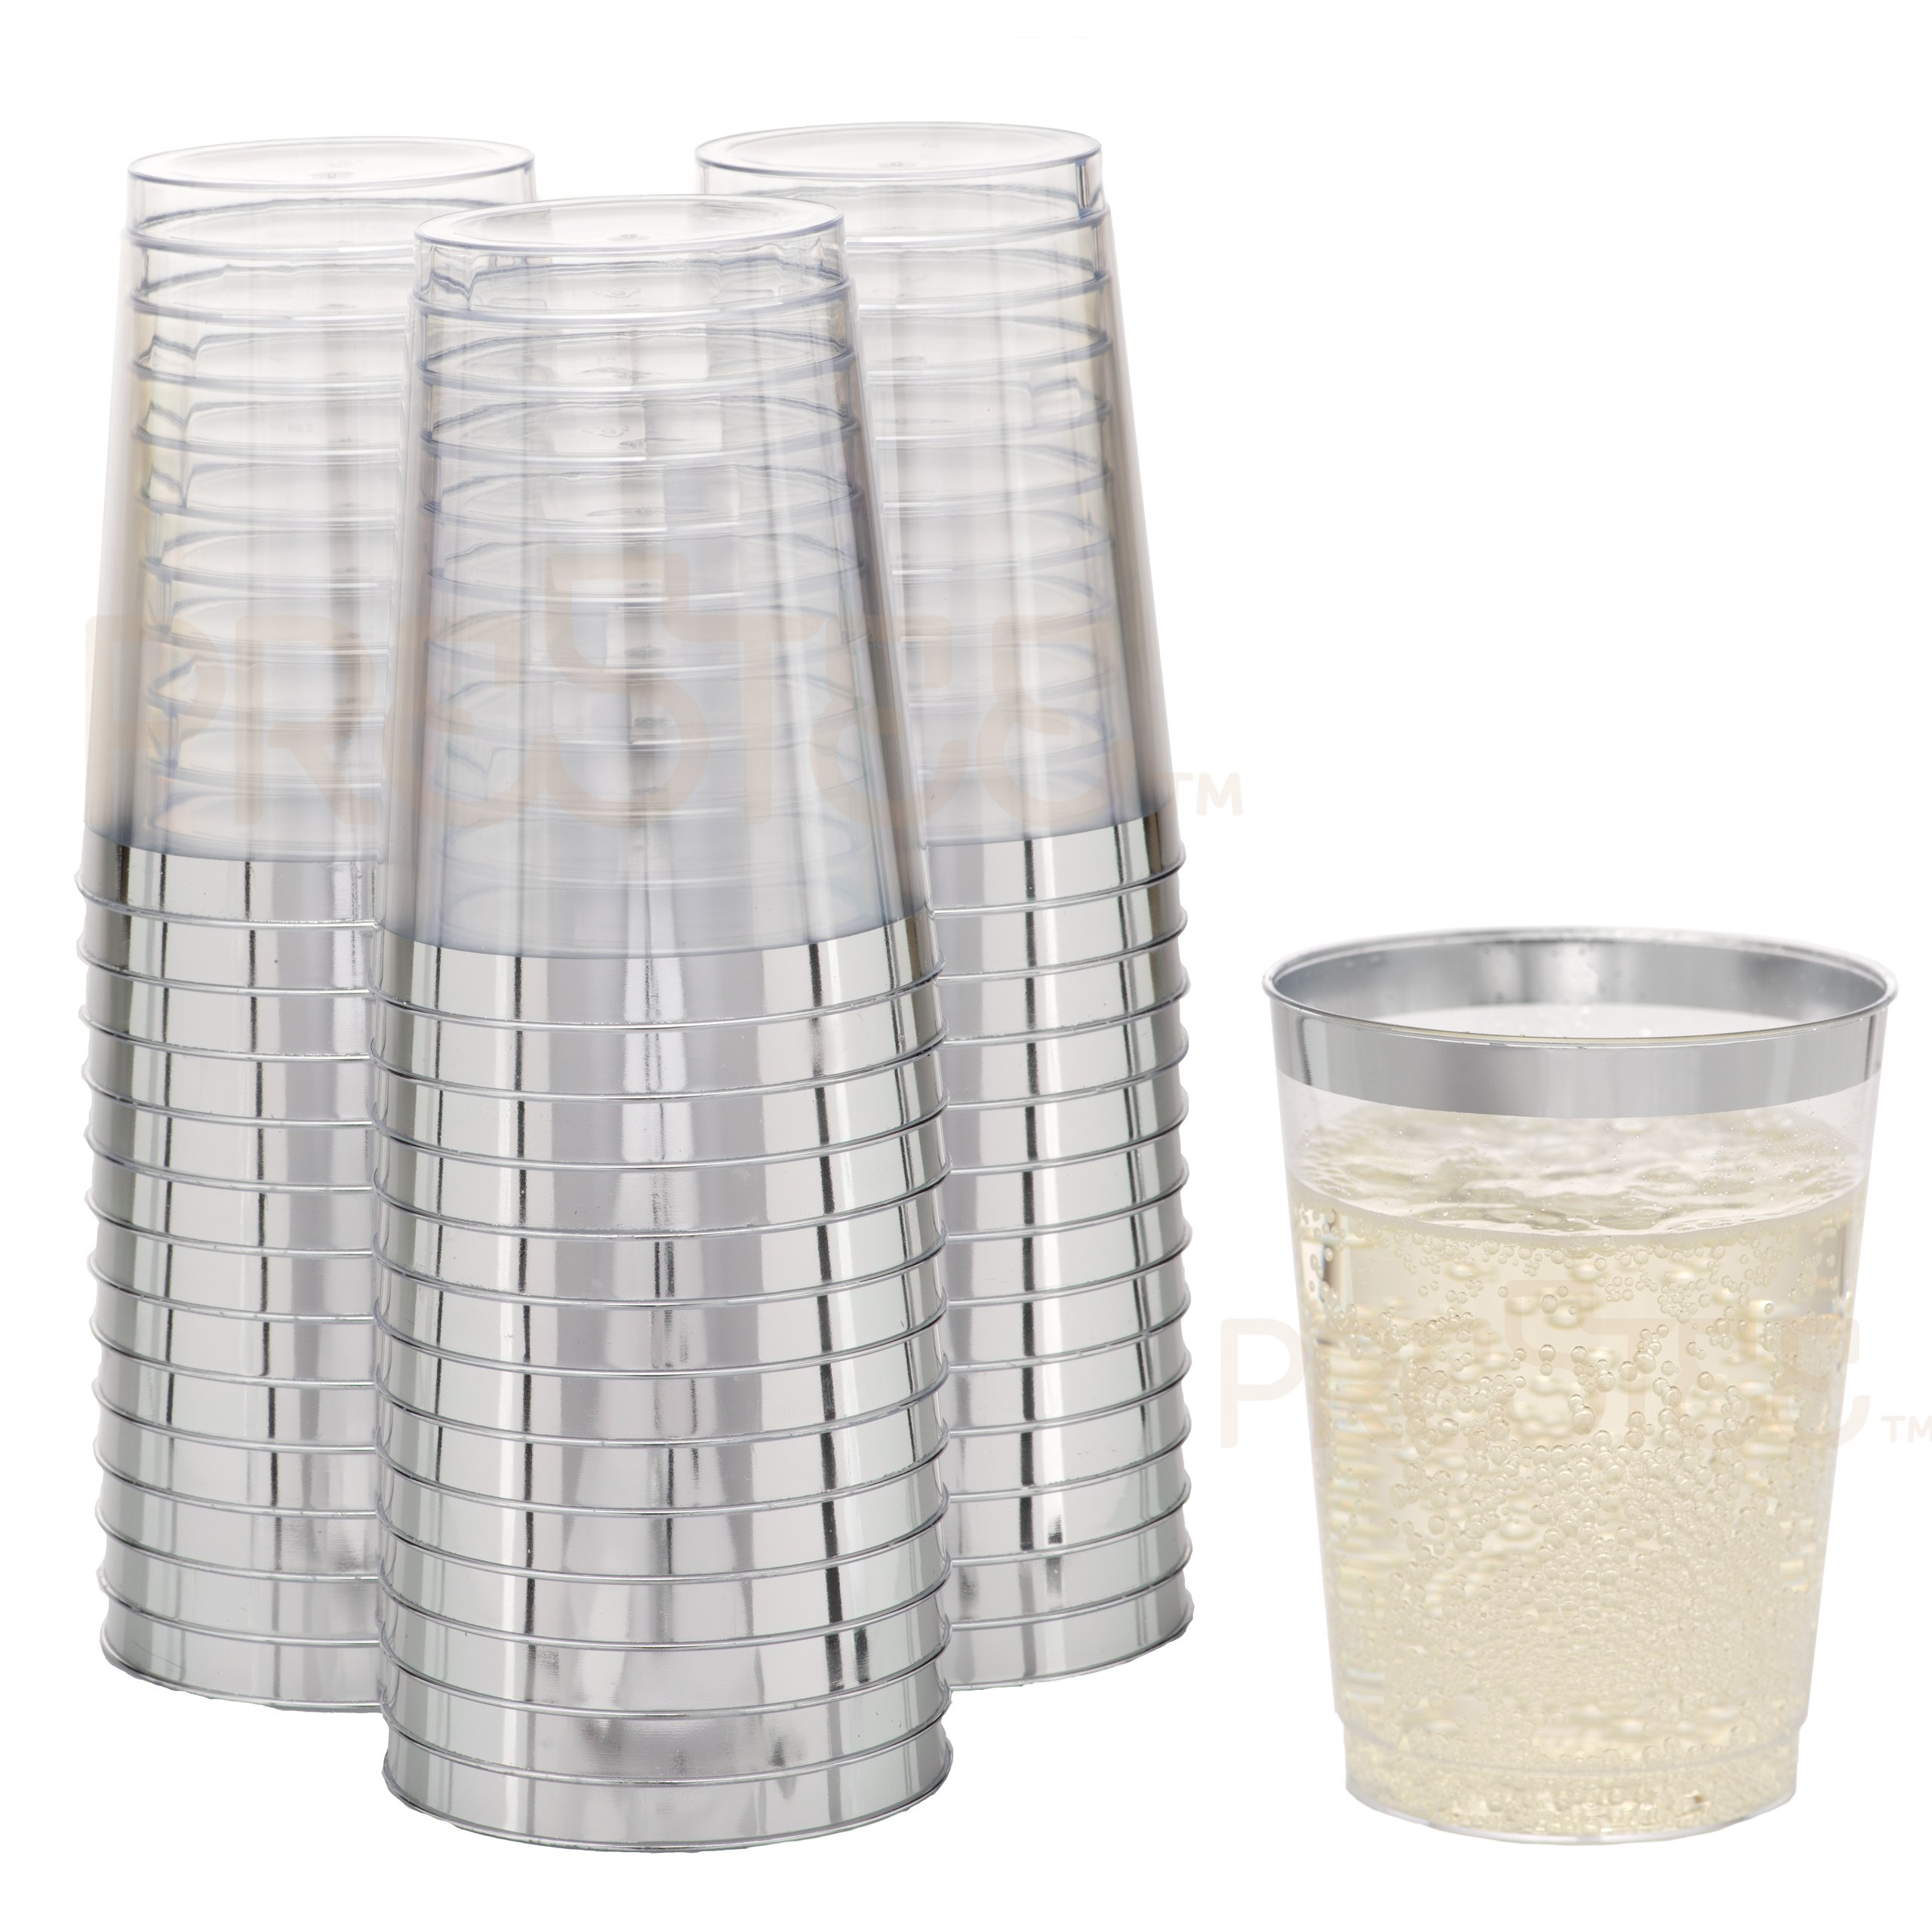 DRINKET Silver Plastic Cups 10 oz Clear Plastic Cups / Tumblers Fancy Plastic Wedding Cups With Silver Rim 50 Ct Disposable For Party Holiday and Occasions SUPER VALUE PACK by Prestee